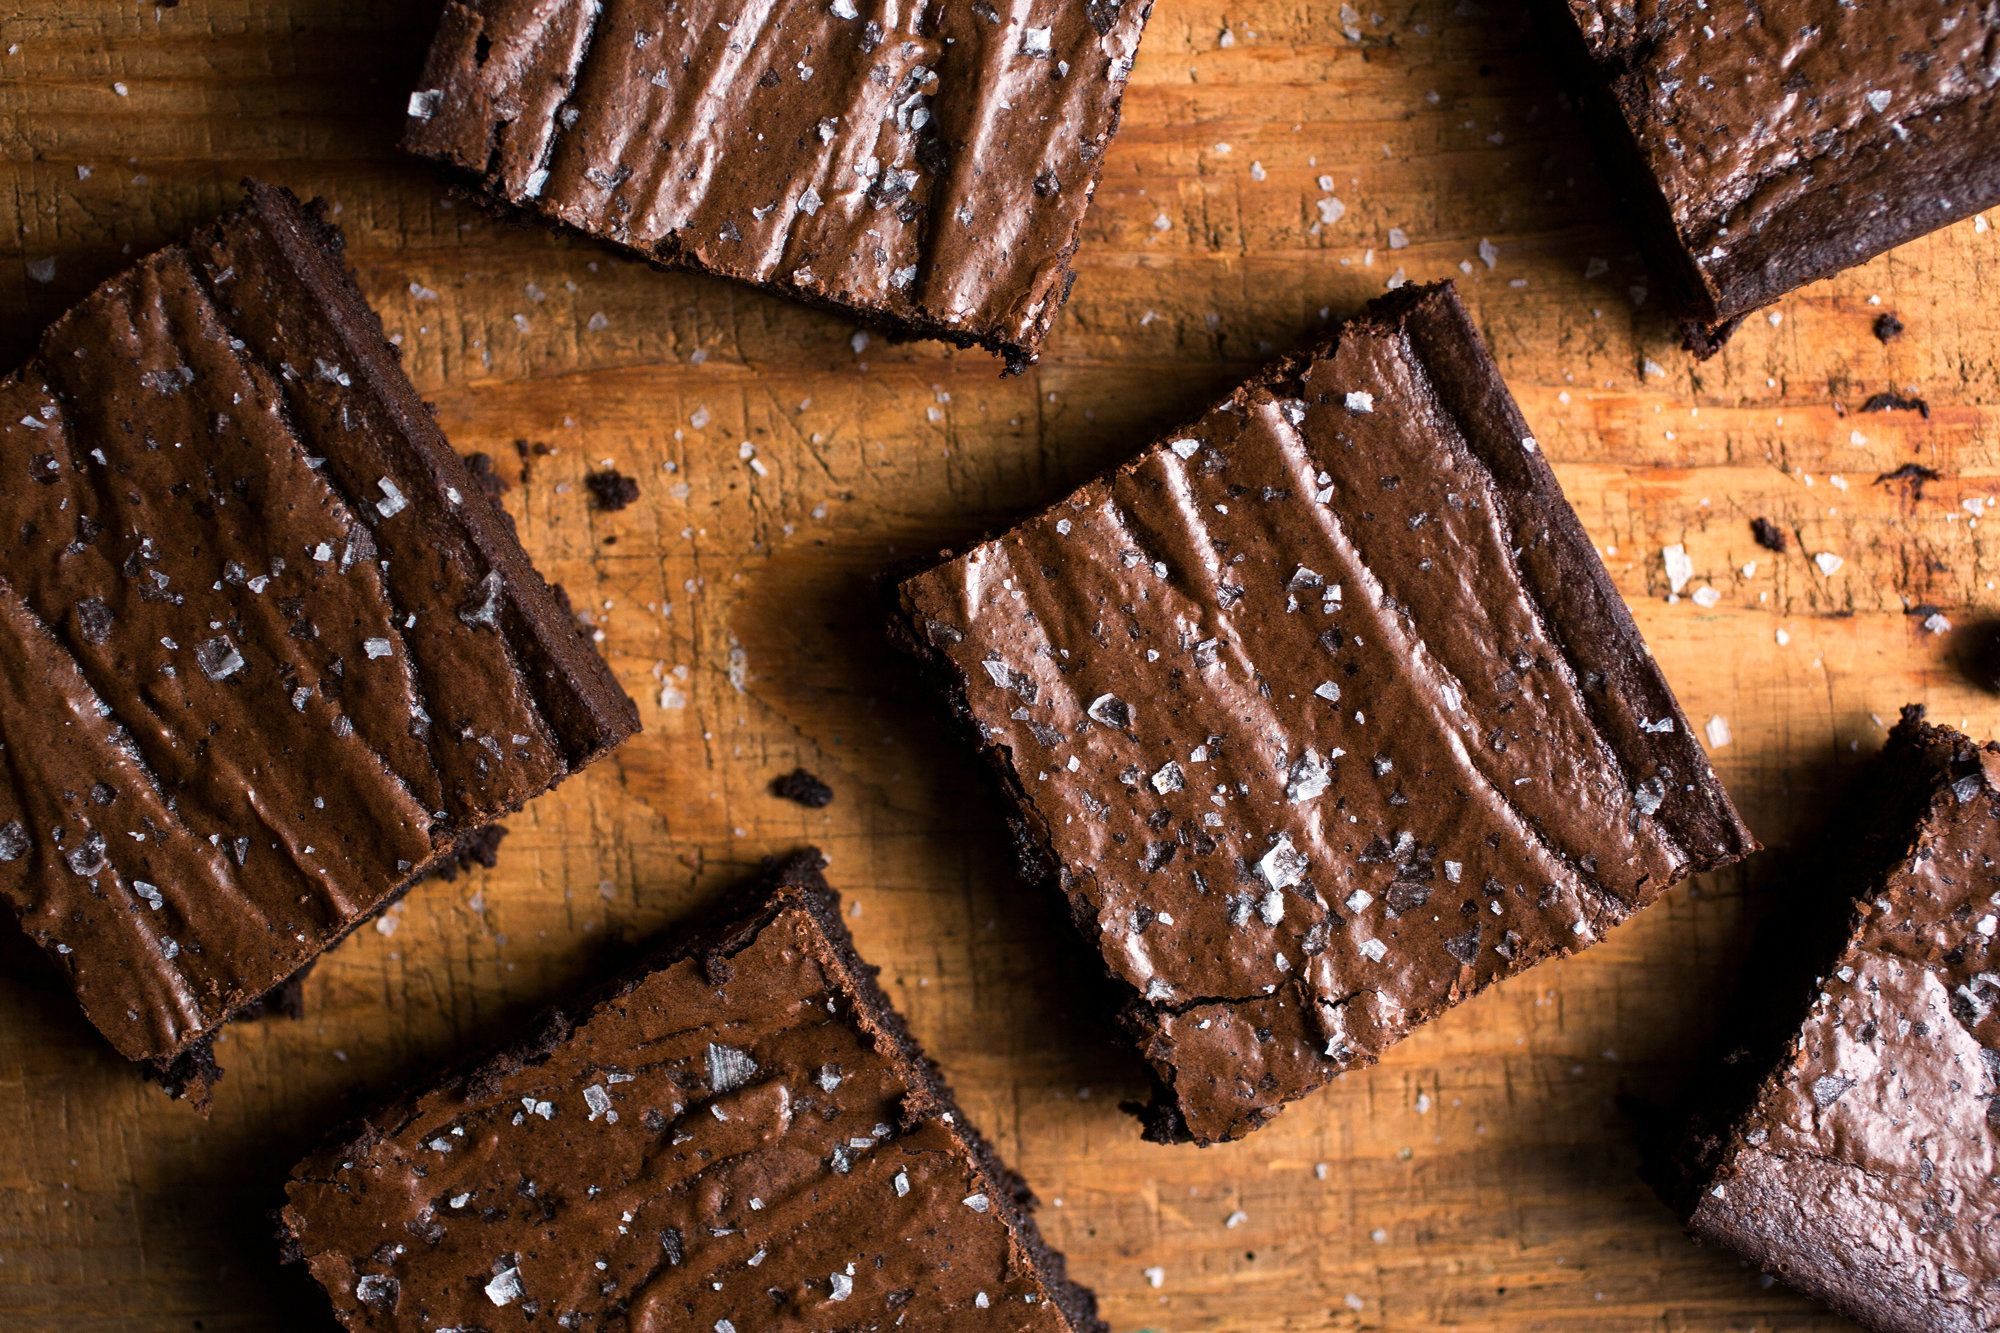 You wouldn't necessarily think adding rye flour to brownies would be a good idea, but it's fabulous The flour lends a deep earthiness that works wonderfully with the bittersweet depth of the chocolate A sprinkle of flaky sea salt on top makes it taste even more chocolaty